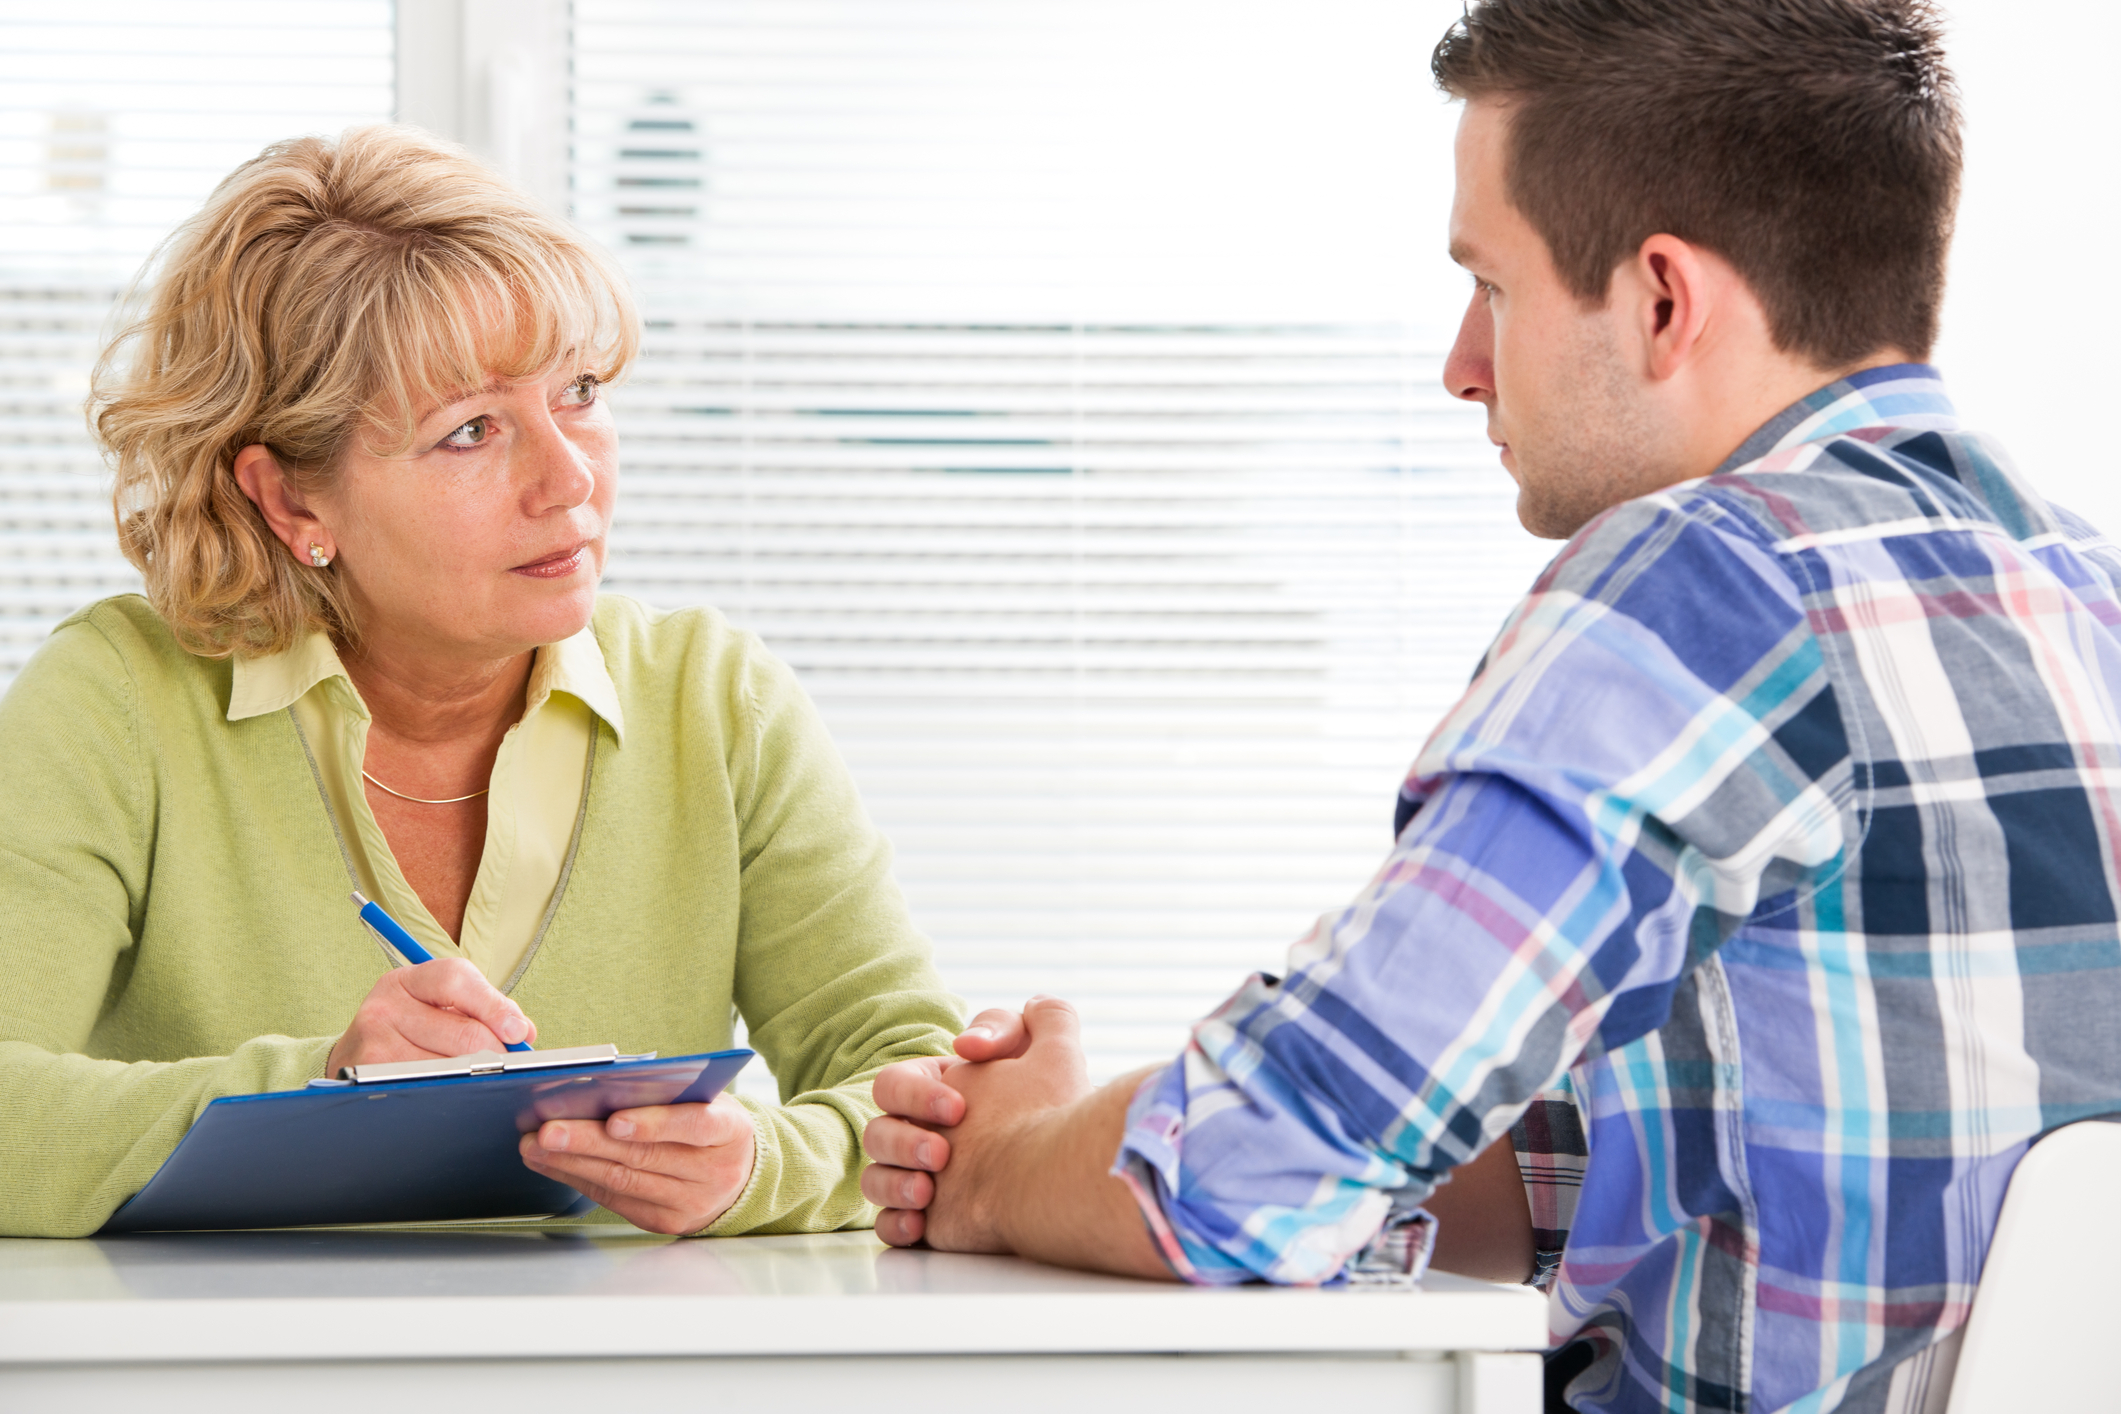 picture of OT interviewing a client